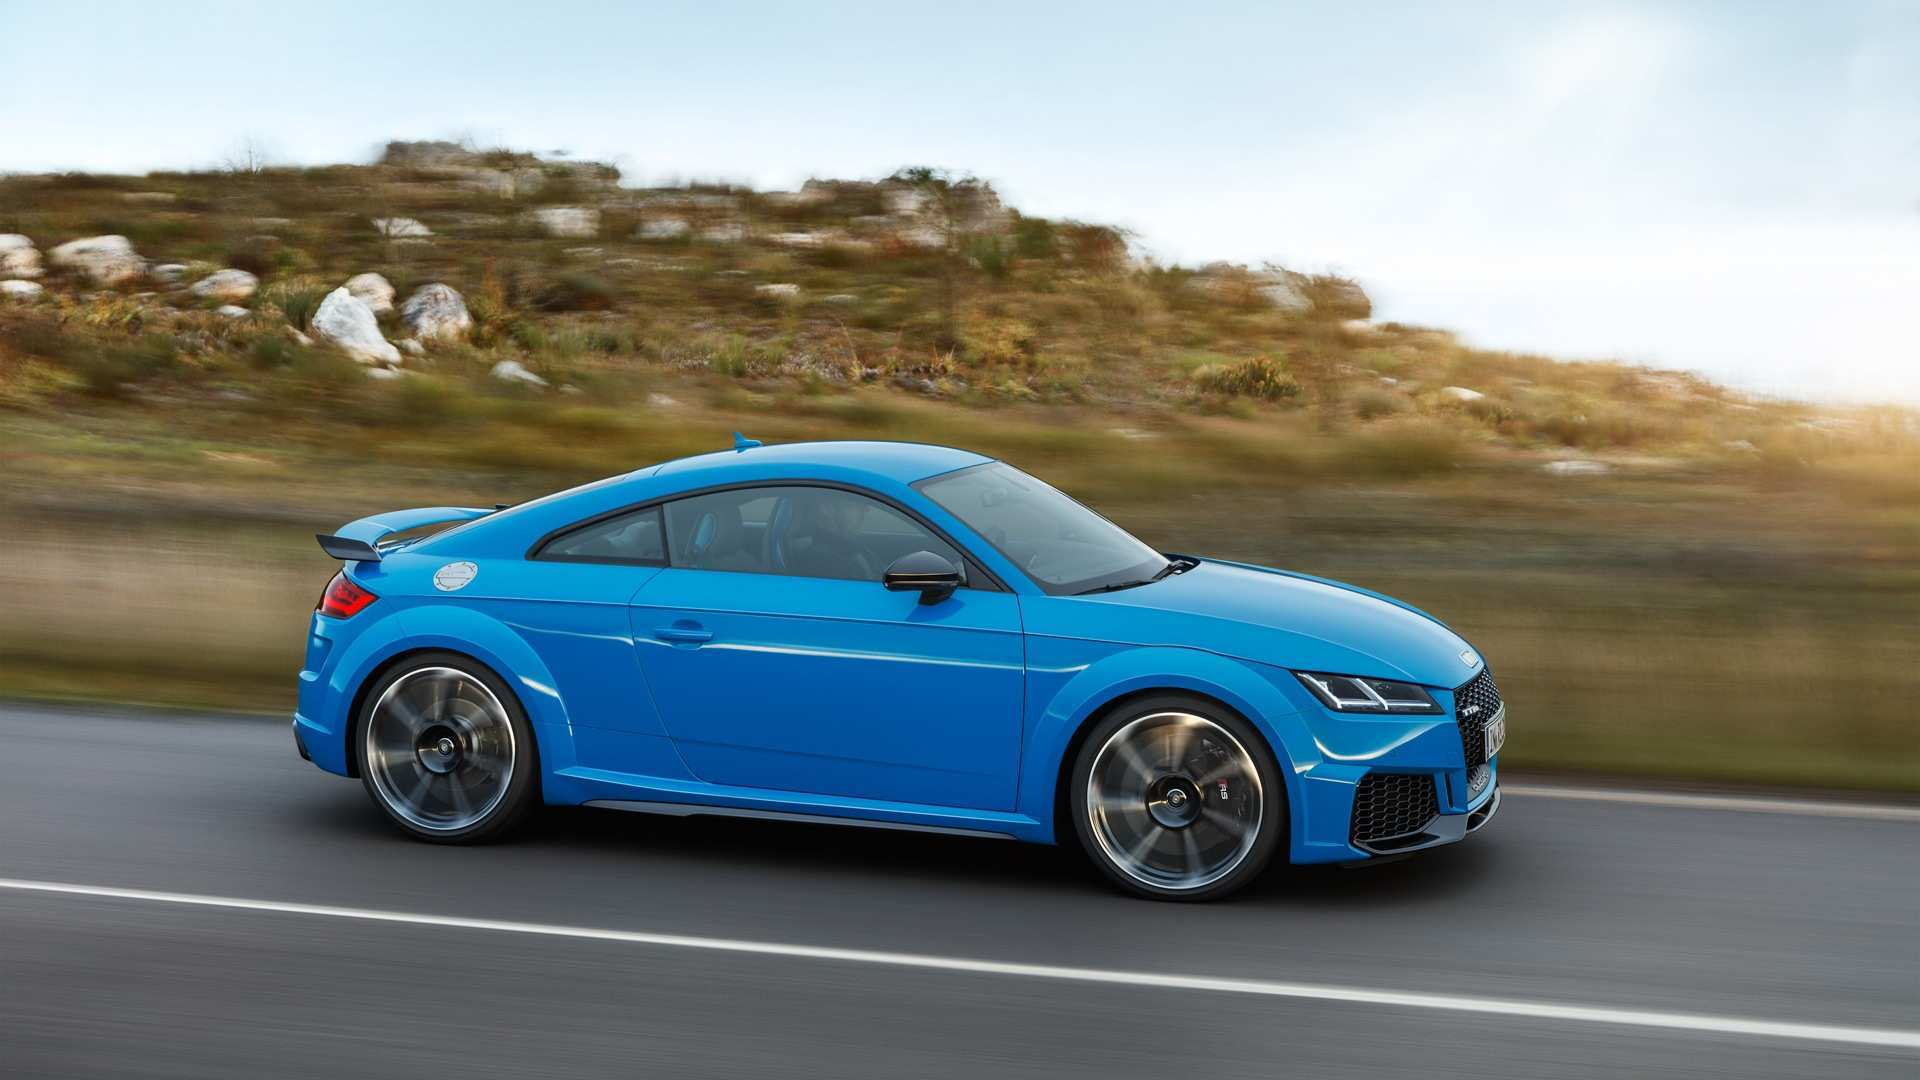 84 Concept of Audi Tt Coupe 2020 Style with Audi Tt Coupe 2020